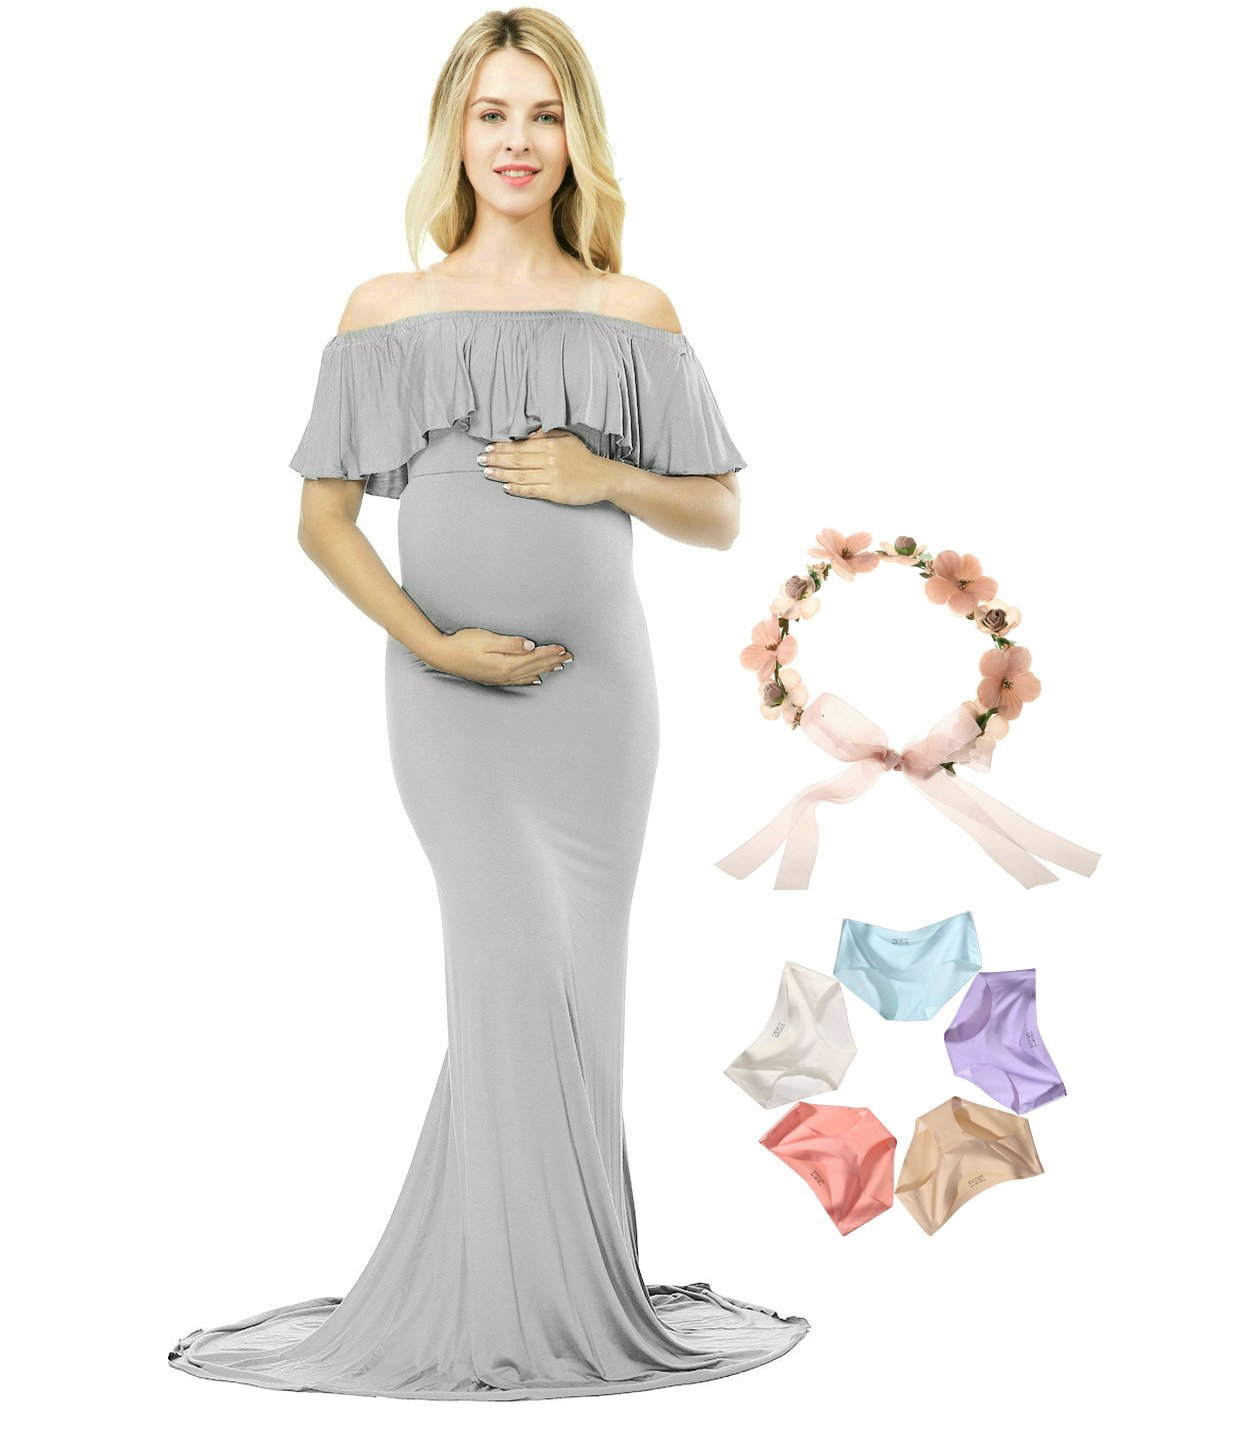 Sannyway Photoshoot Maternity Dress Ruffle Off Shoulder Photography Maxi Gown (Grey, L)